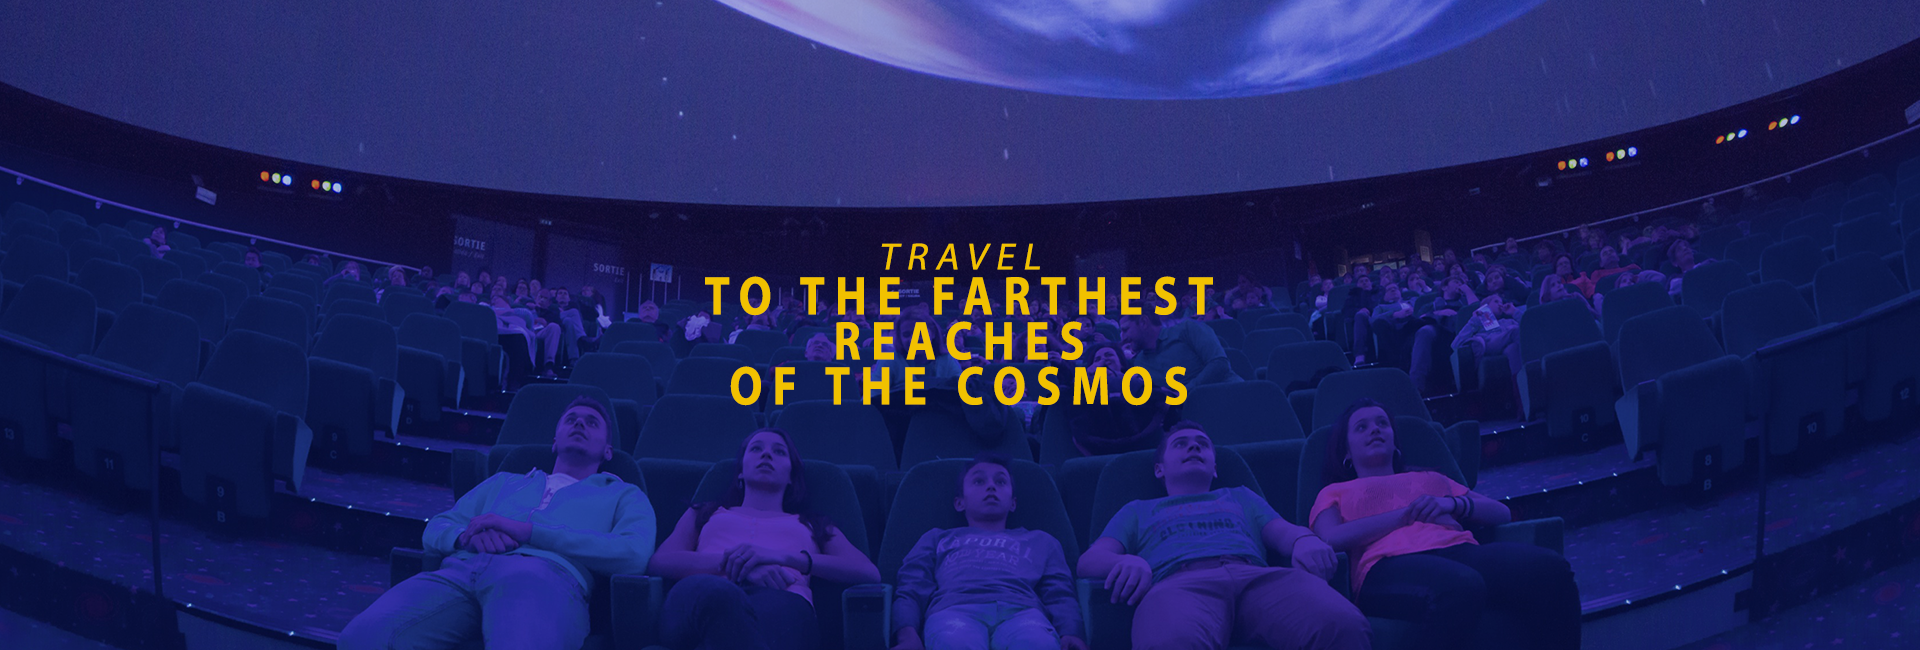 Travel to the farthest reaches of the cosmos